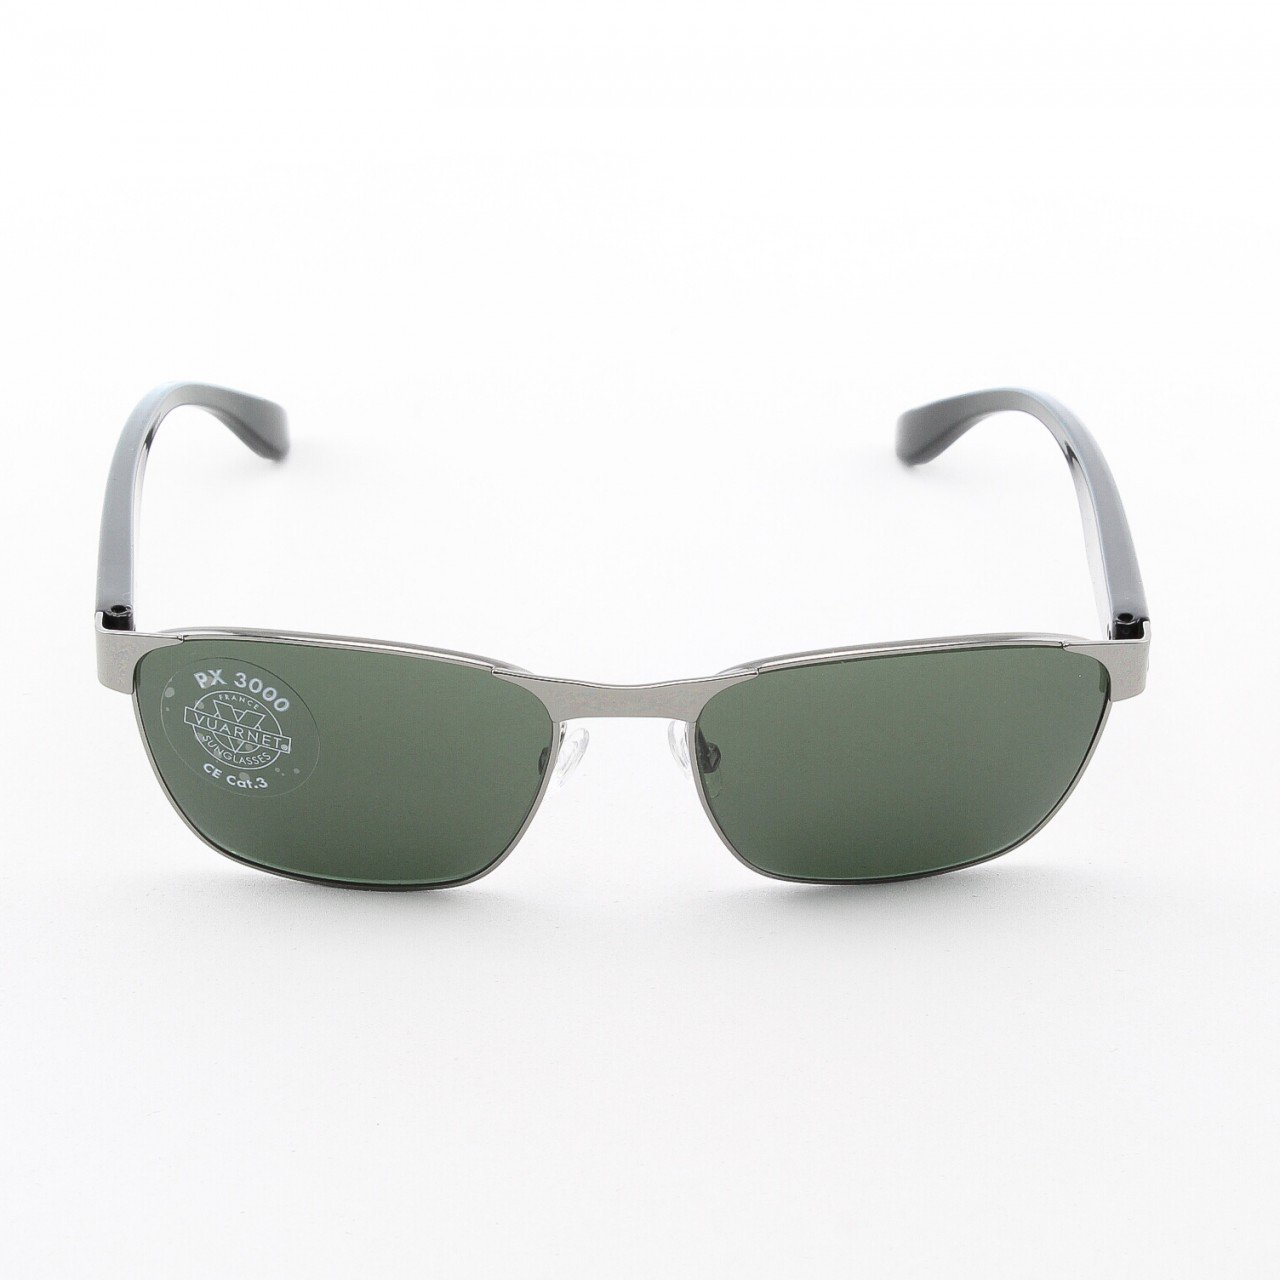 Vuarnet VL 1055 Sunglasses Col. 0002 1121 Silver and Black with Grey PX3000 Lenses